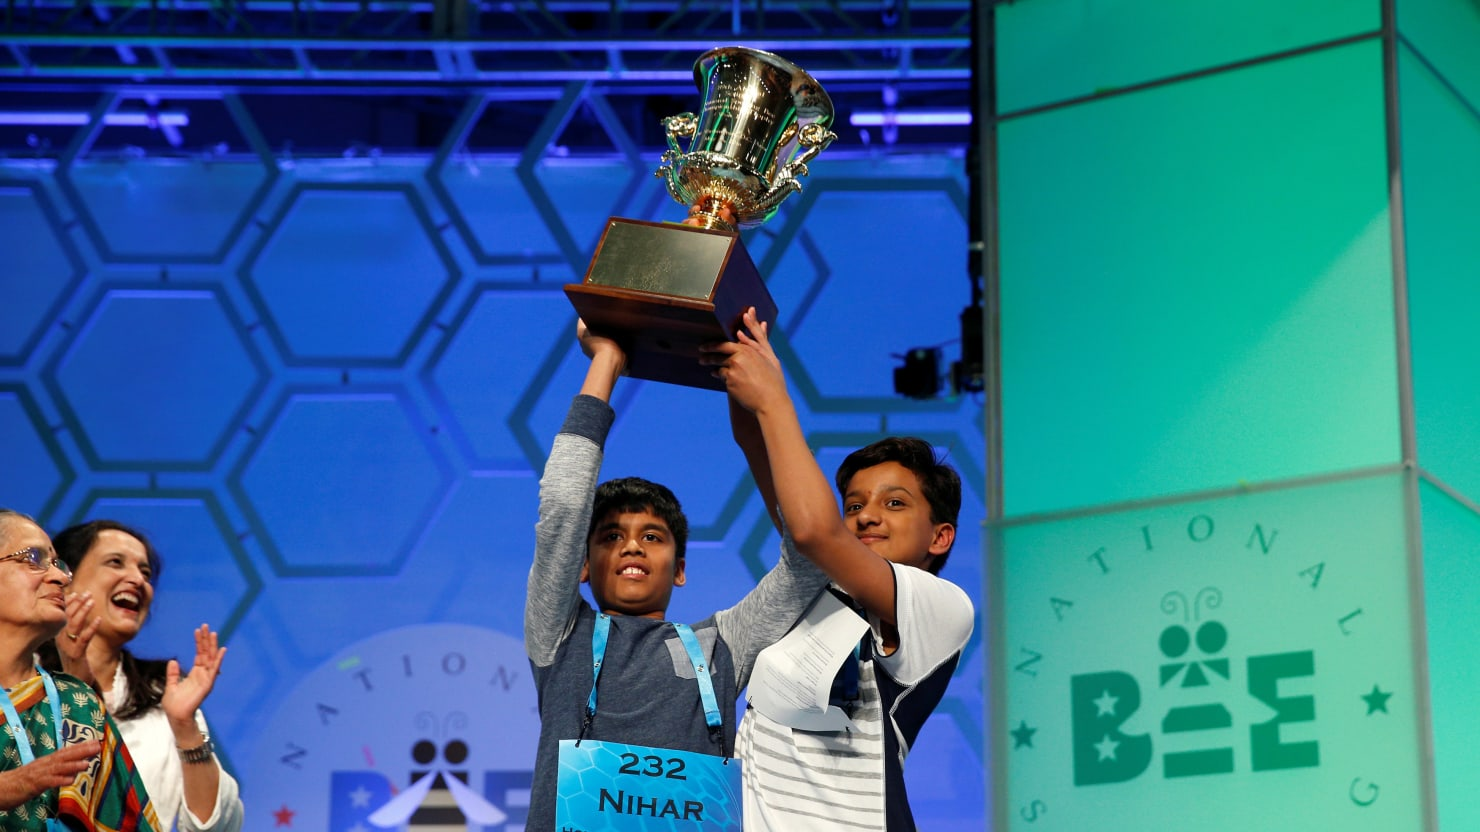 Dramatic 2016 Scripps National Spelling Bee Ends With a Tie